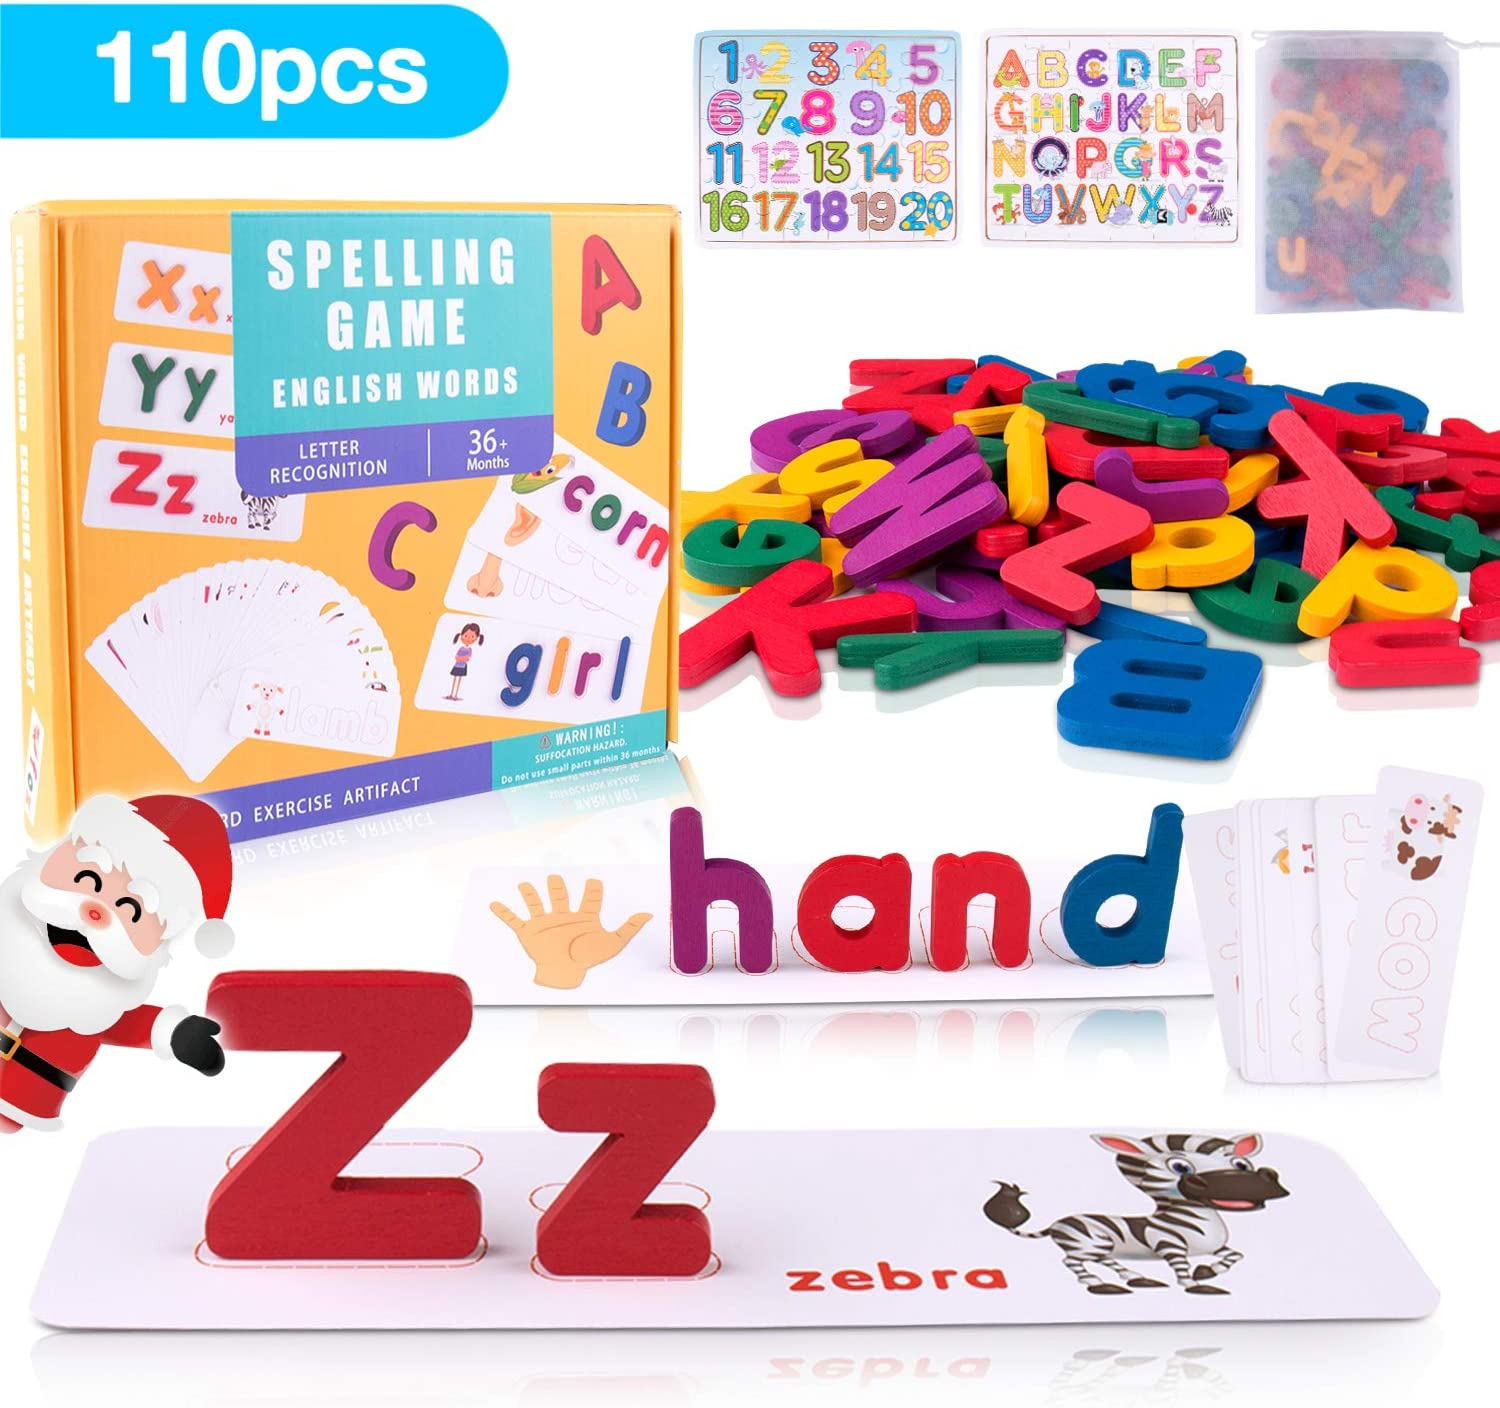 ABC Wooden Alphabet Number Learning Puzzles, OMEW Letter Matching Spelling Game Sight Words Flashcard with Upper and Lowercase Kindergarten Homeschool Supplies Educational Toys for Toddlers Boys Girls